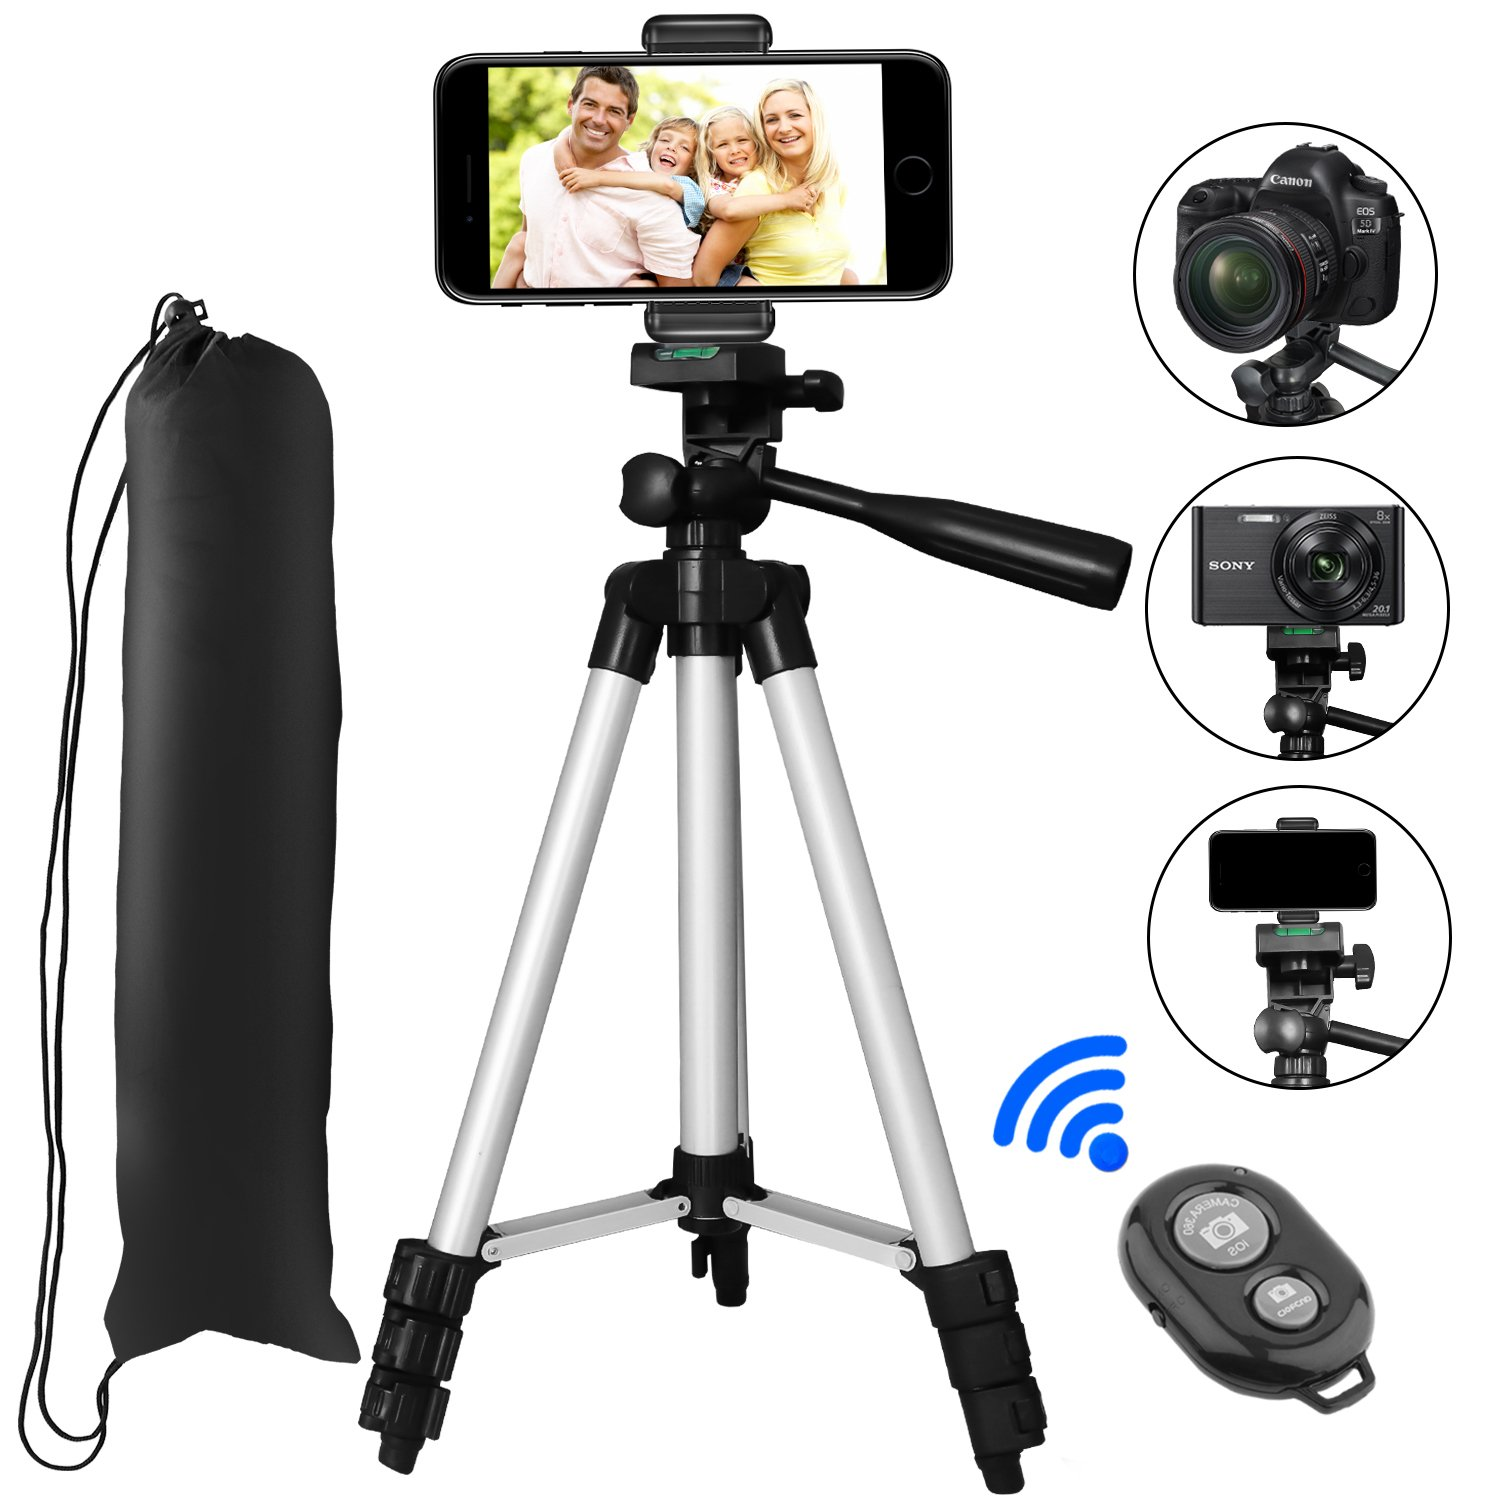 Tripod for iPhone, PEYOU 42'' Aluminum Camera Tripod+Universal Smartphone Holder Mount+Bluetooth Wireless Remote Control Shutter for iPhone X/8/8 Plus/7/7 Plus/6/6 Plus, Galaxy Note 8/S9/S8/S7 Edge/S6